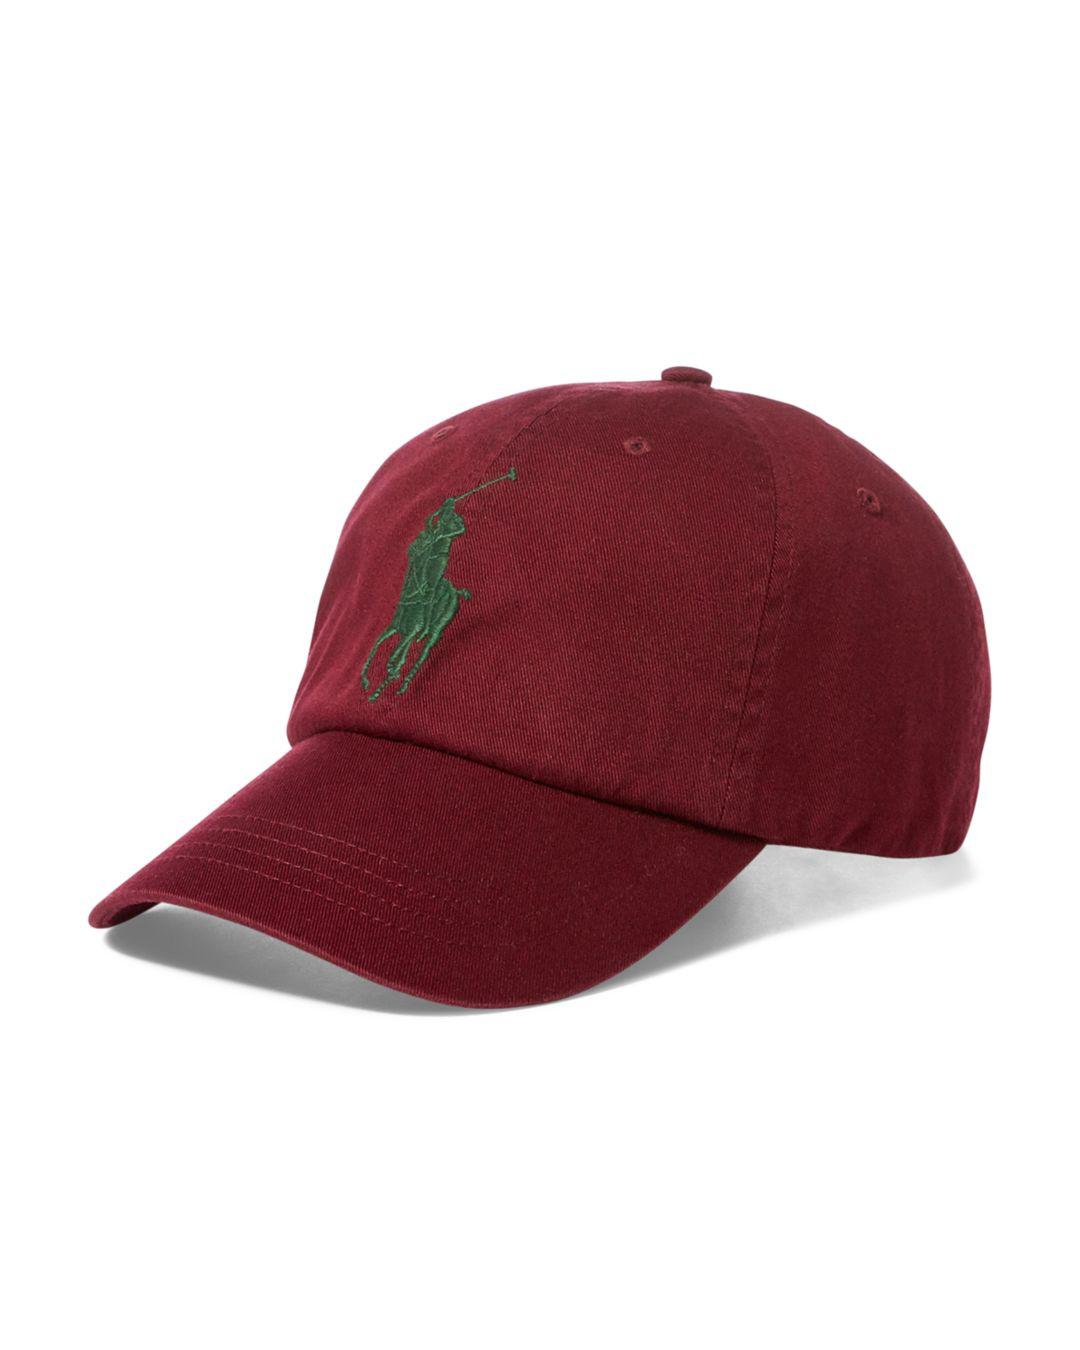 Lyst - Polo Ralph Lauren Polo Logo Chino Baseball Cap in Red for Men 20381ac40186